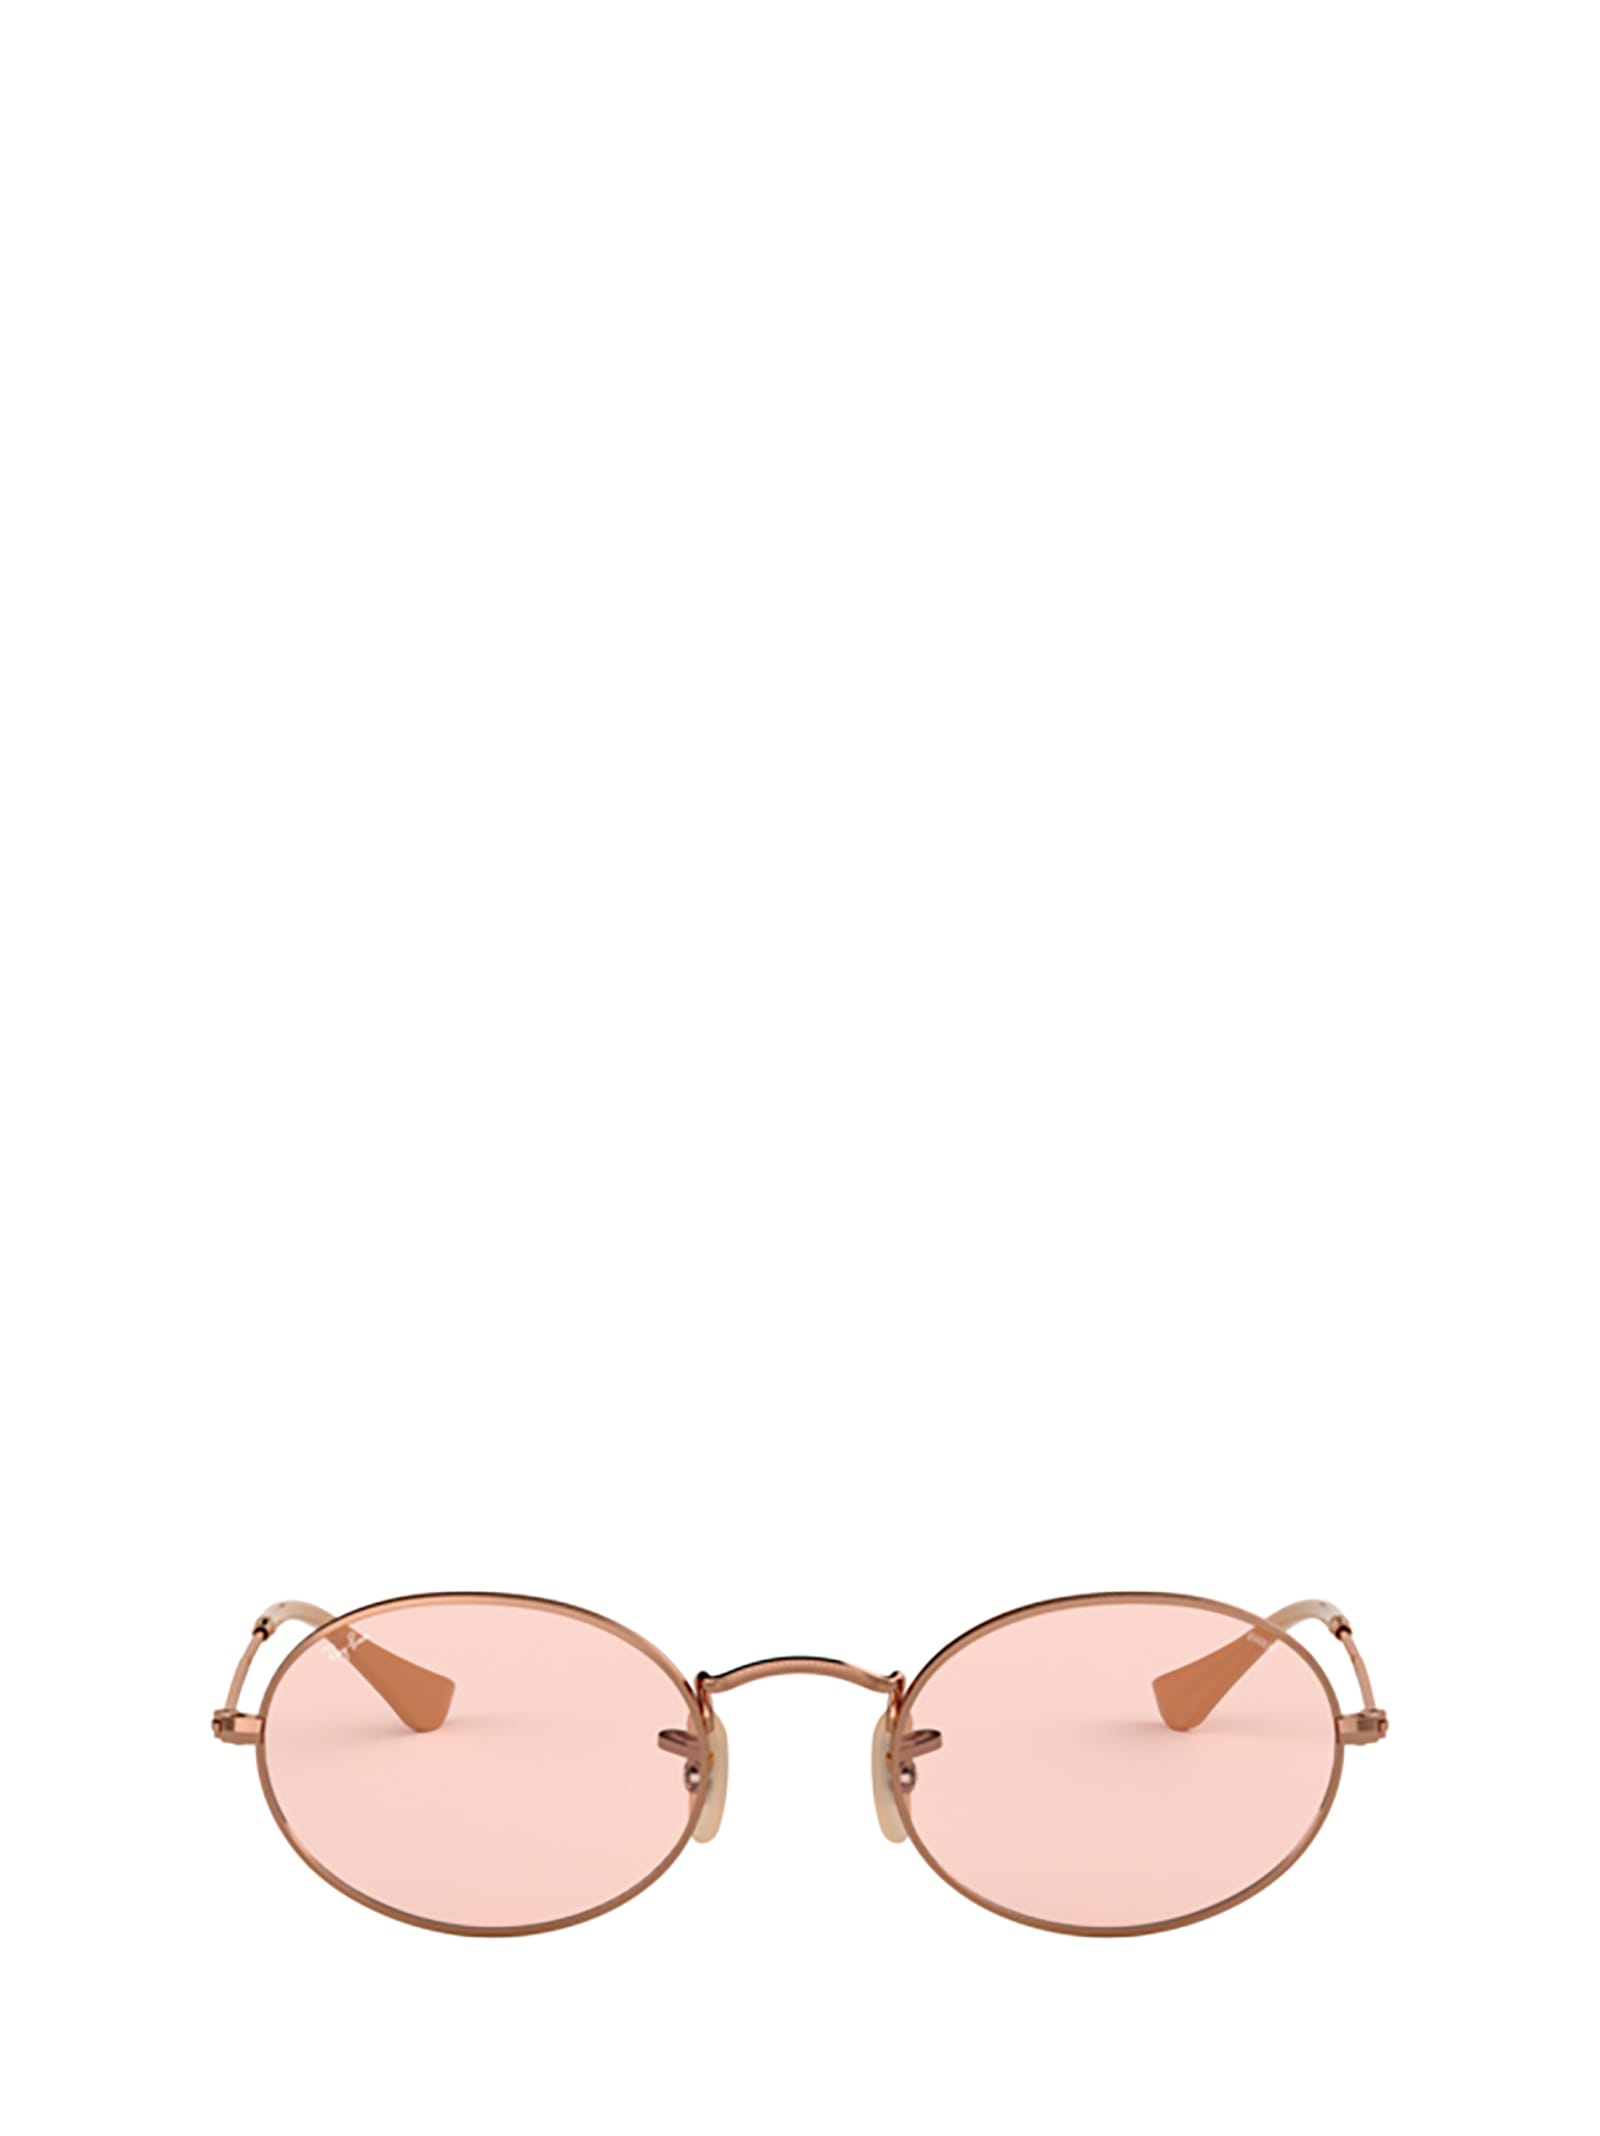 Ray-Ban Ray-ban Rb3547n Copper Sunglasses